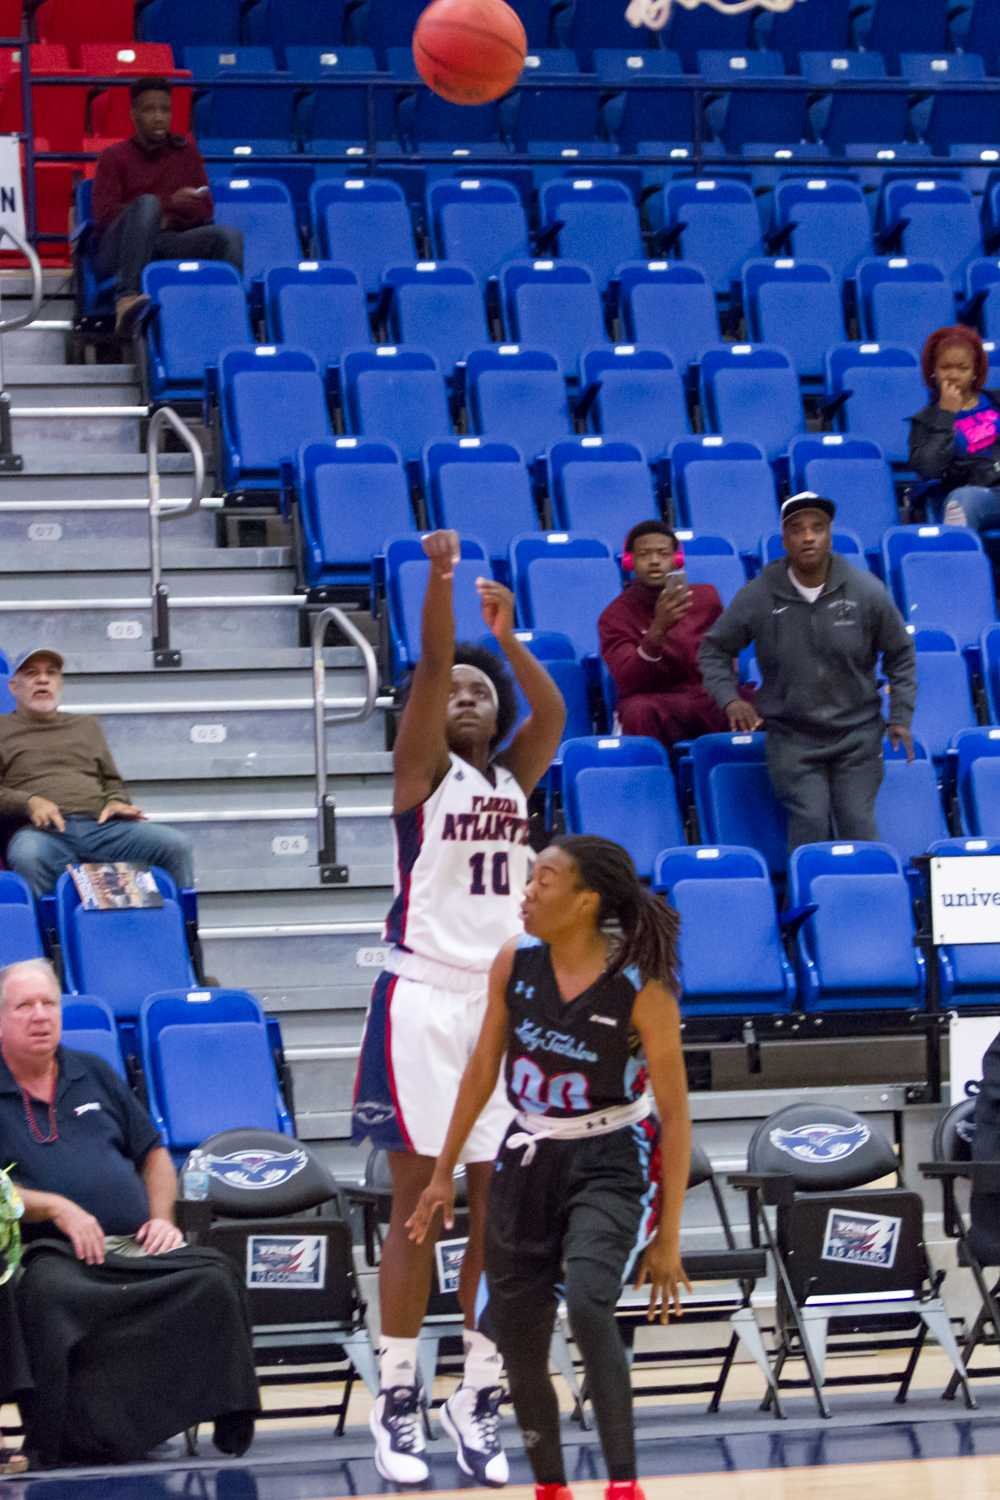 Junior guard Morgan Robinson (10) attempts a shot from downtown. She shot 2-of-4 in the Owls' loss to La. Tech on Feb. 12.